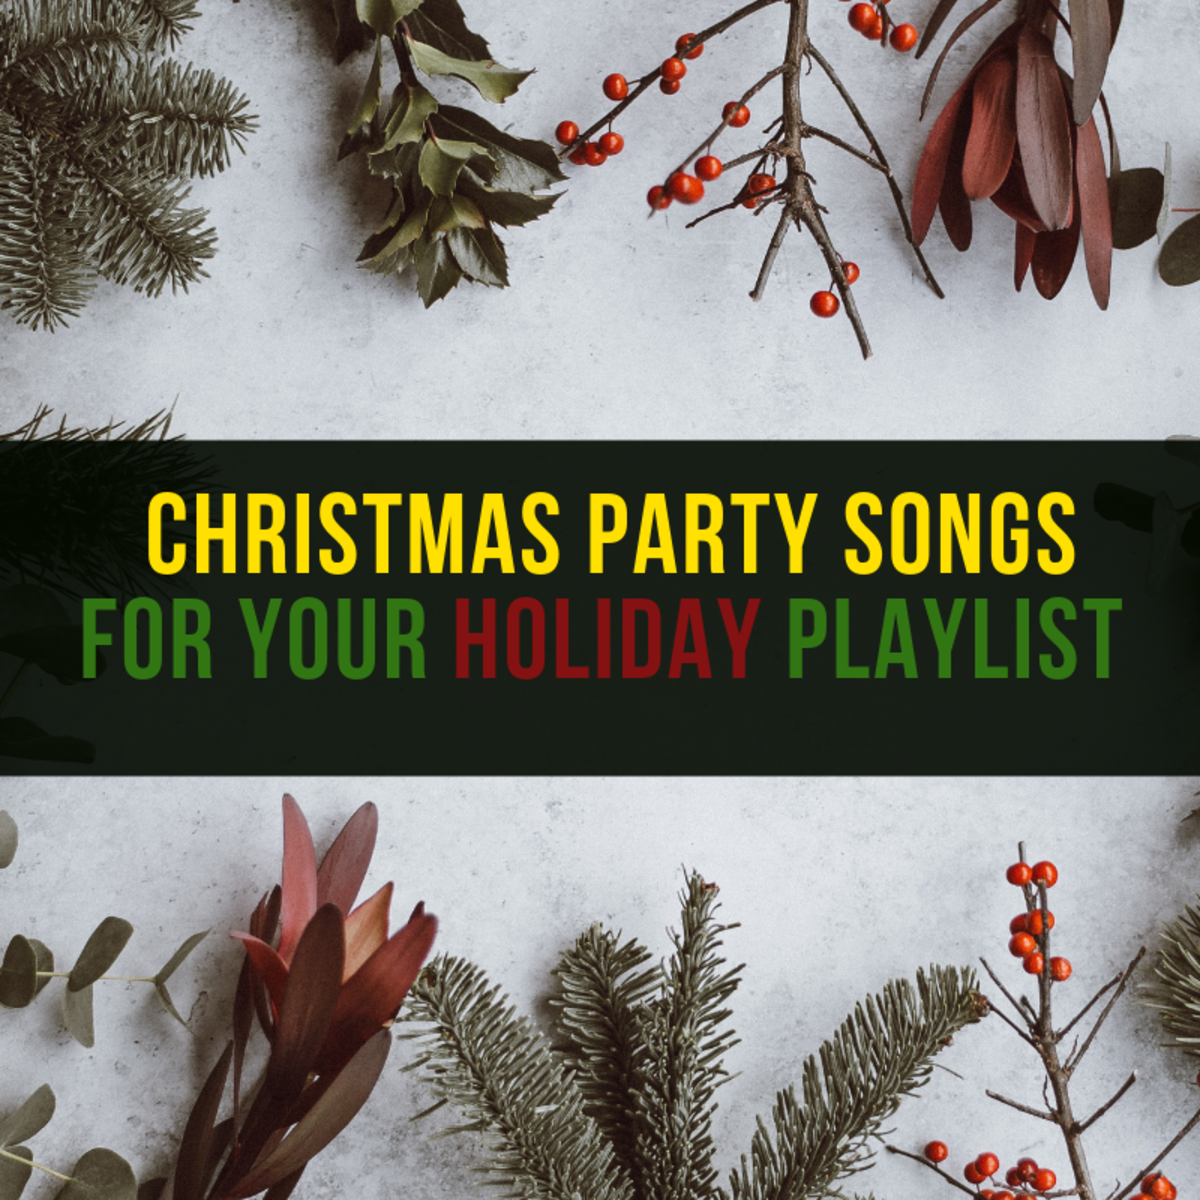 25 Christmas Party Songs for Your Holiday Playlist